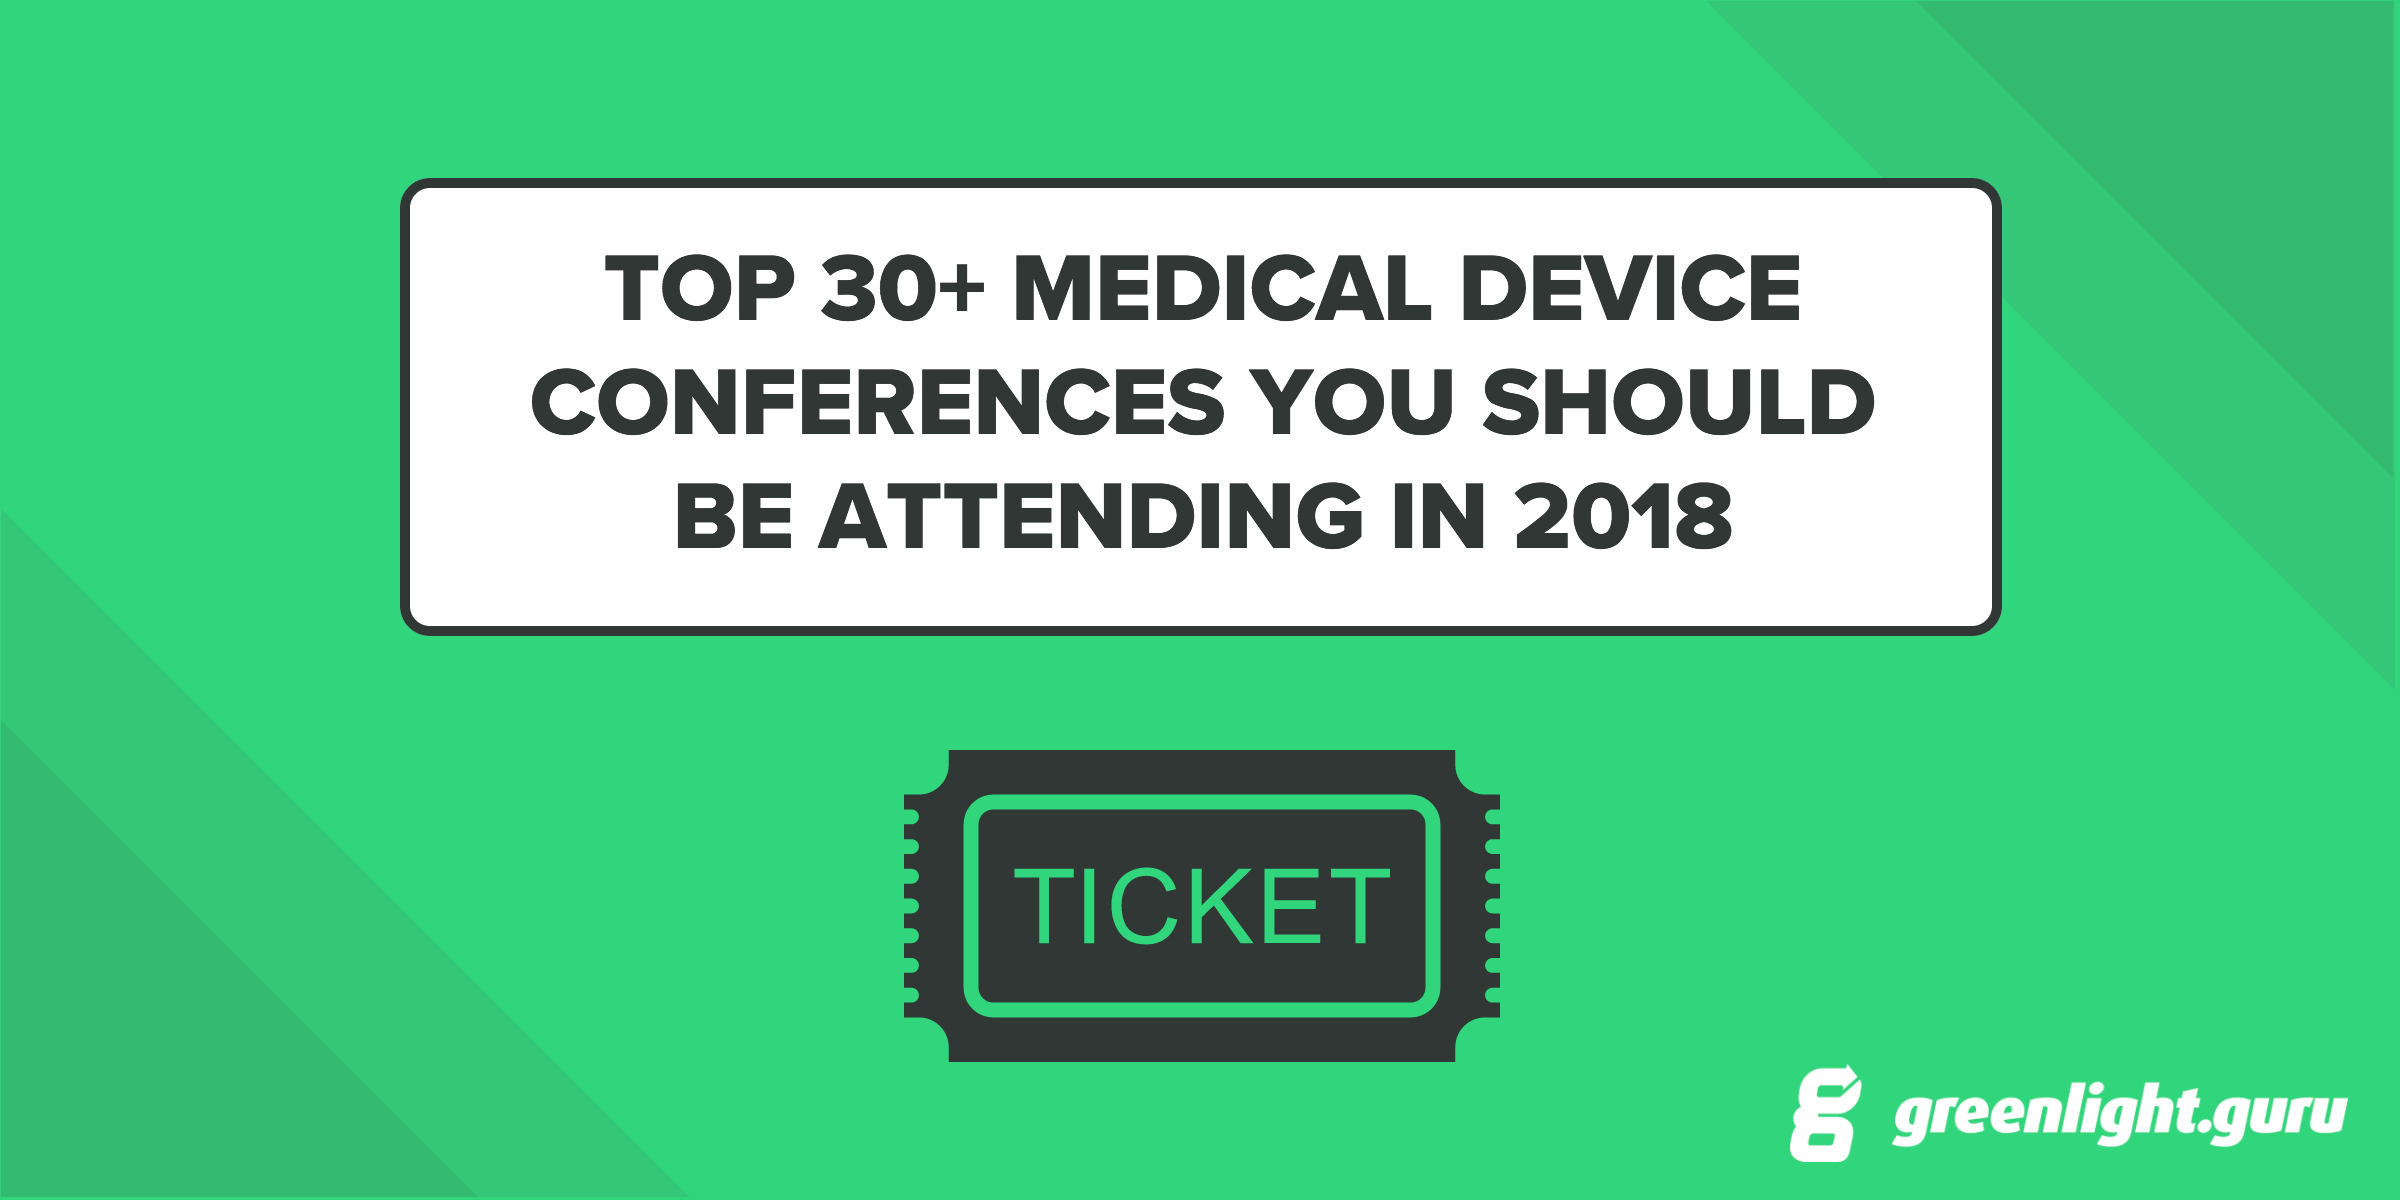 Top 30+ Medical Device Conferences You Should Be Attending in 2018 - Featured Image